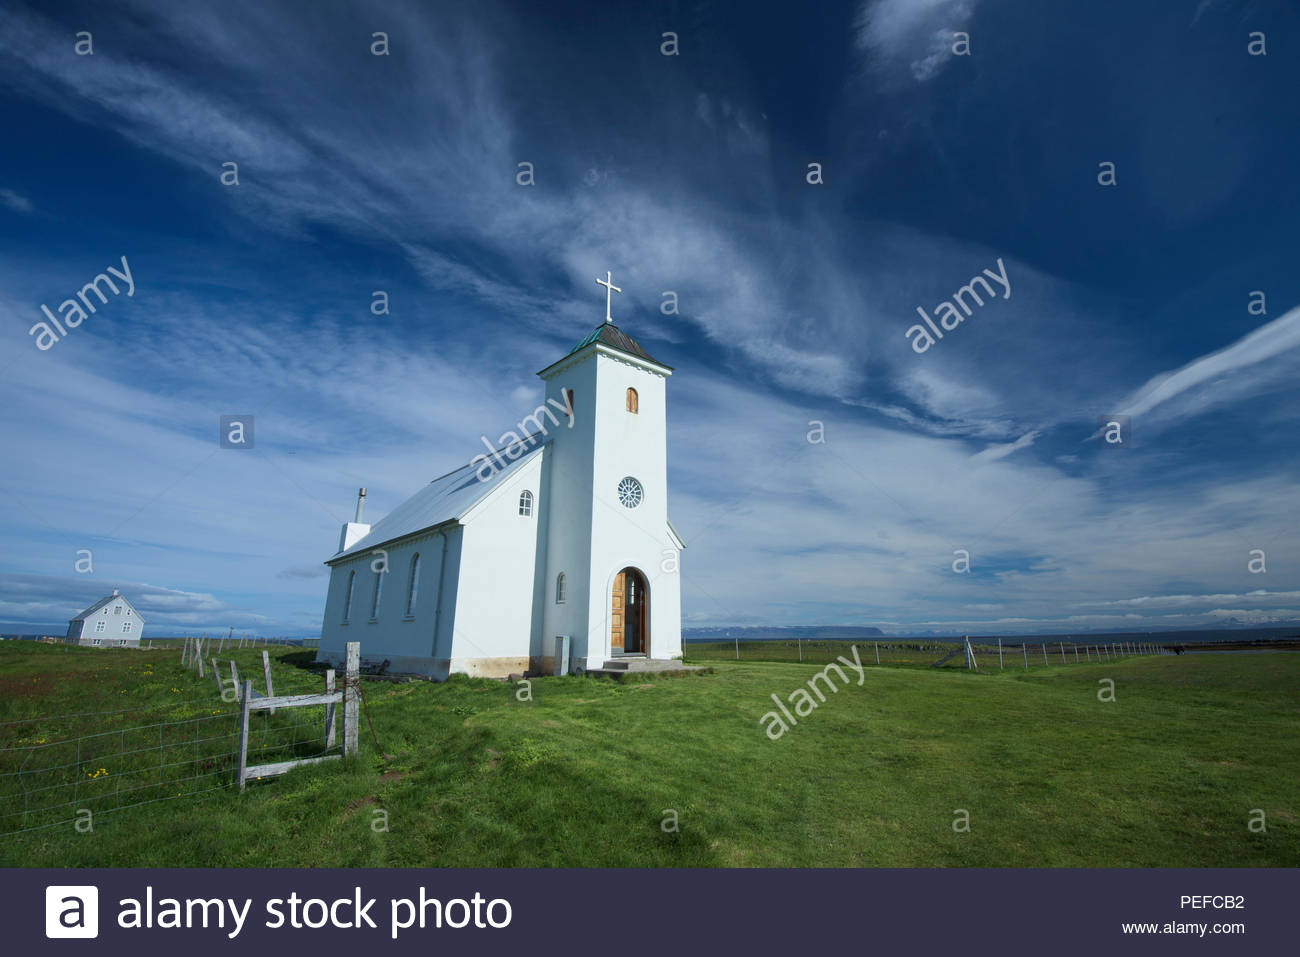 A church on Flatey Island, the largest island of the western islands, located in Breidafjordur on the northwestern part of Iceland. Stock Photo